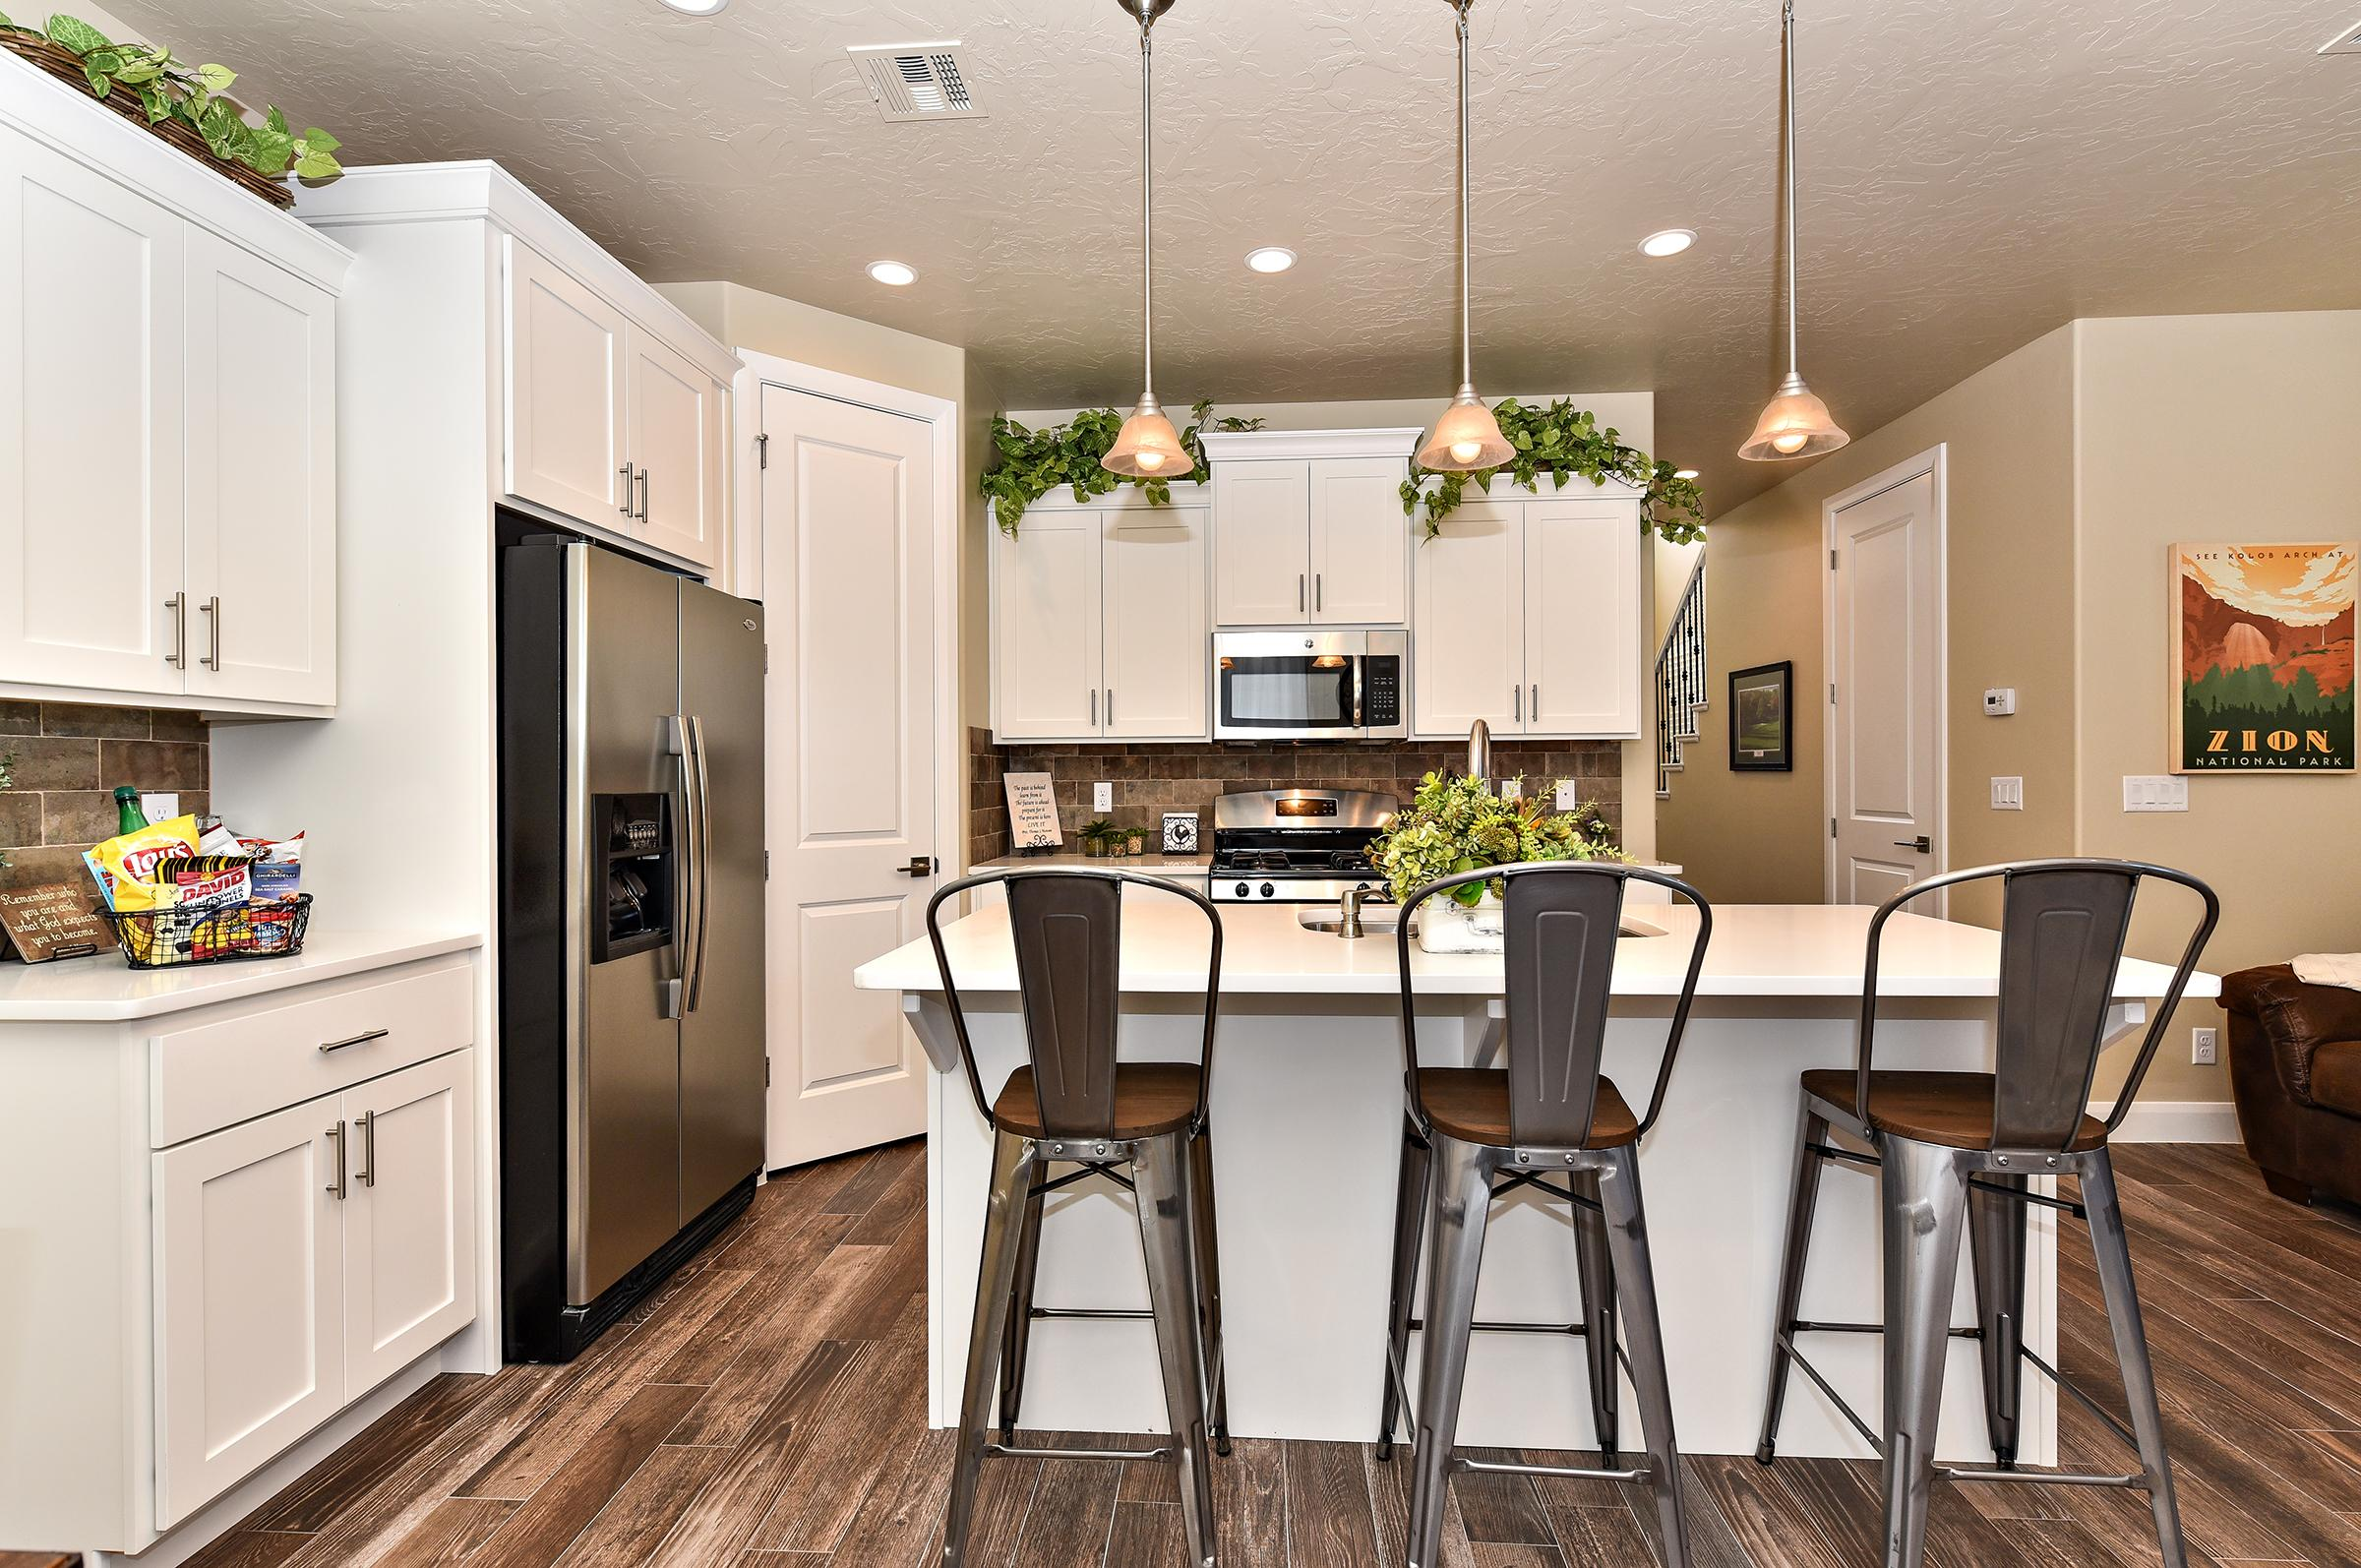 The Kitchen Island comfortably seats 3 adults and creates a great space for serving and preparing meals